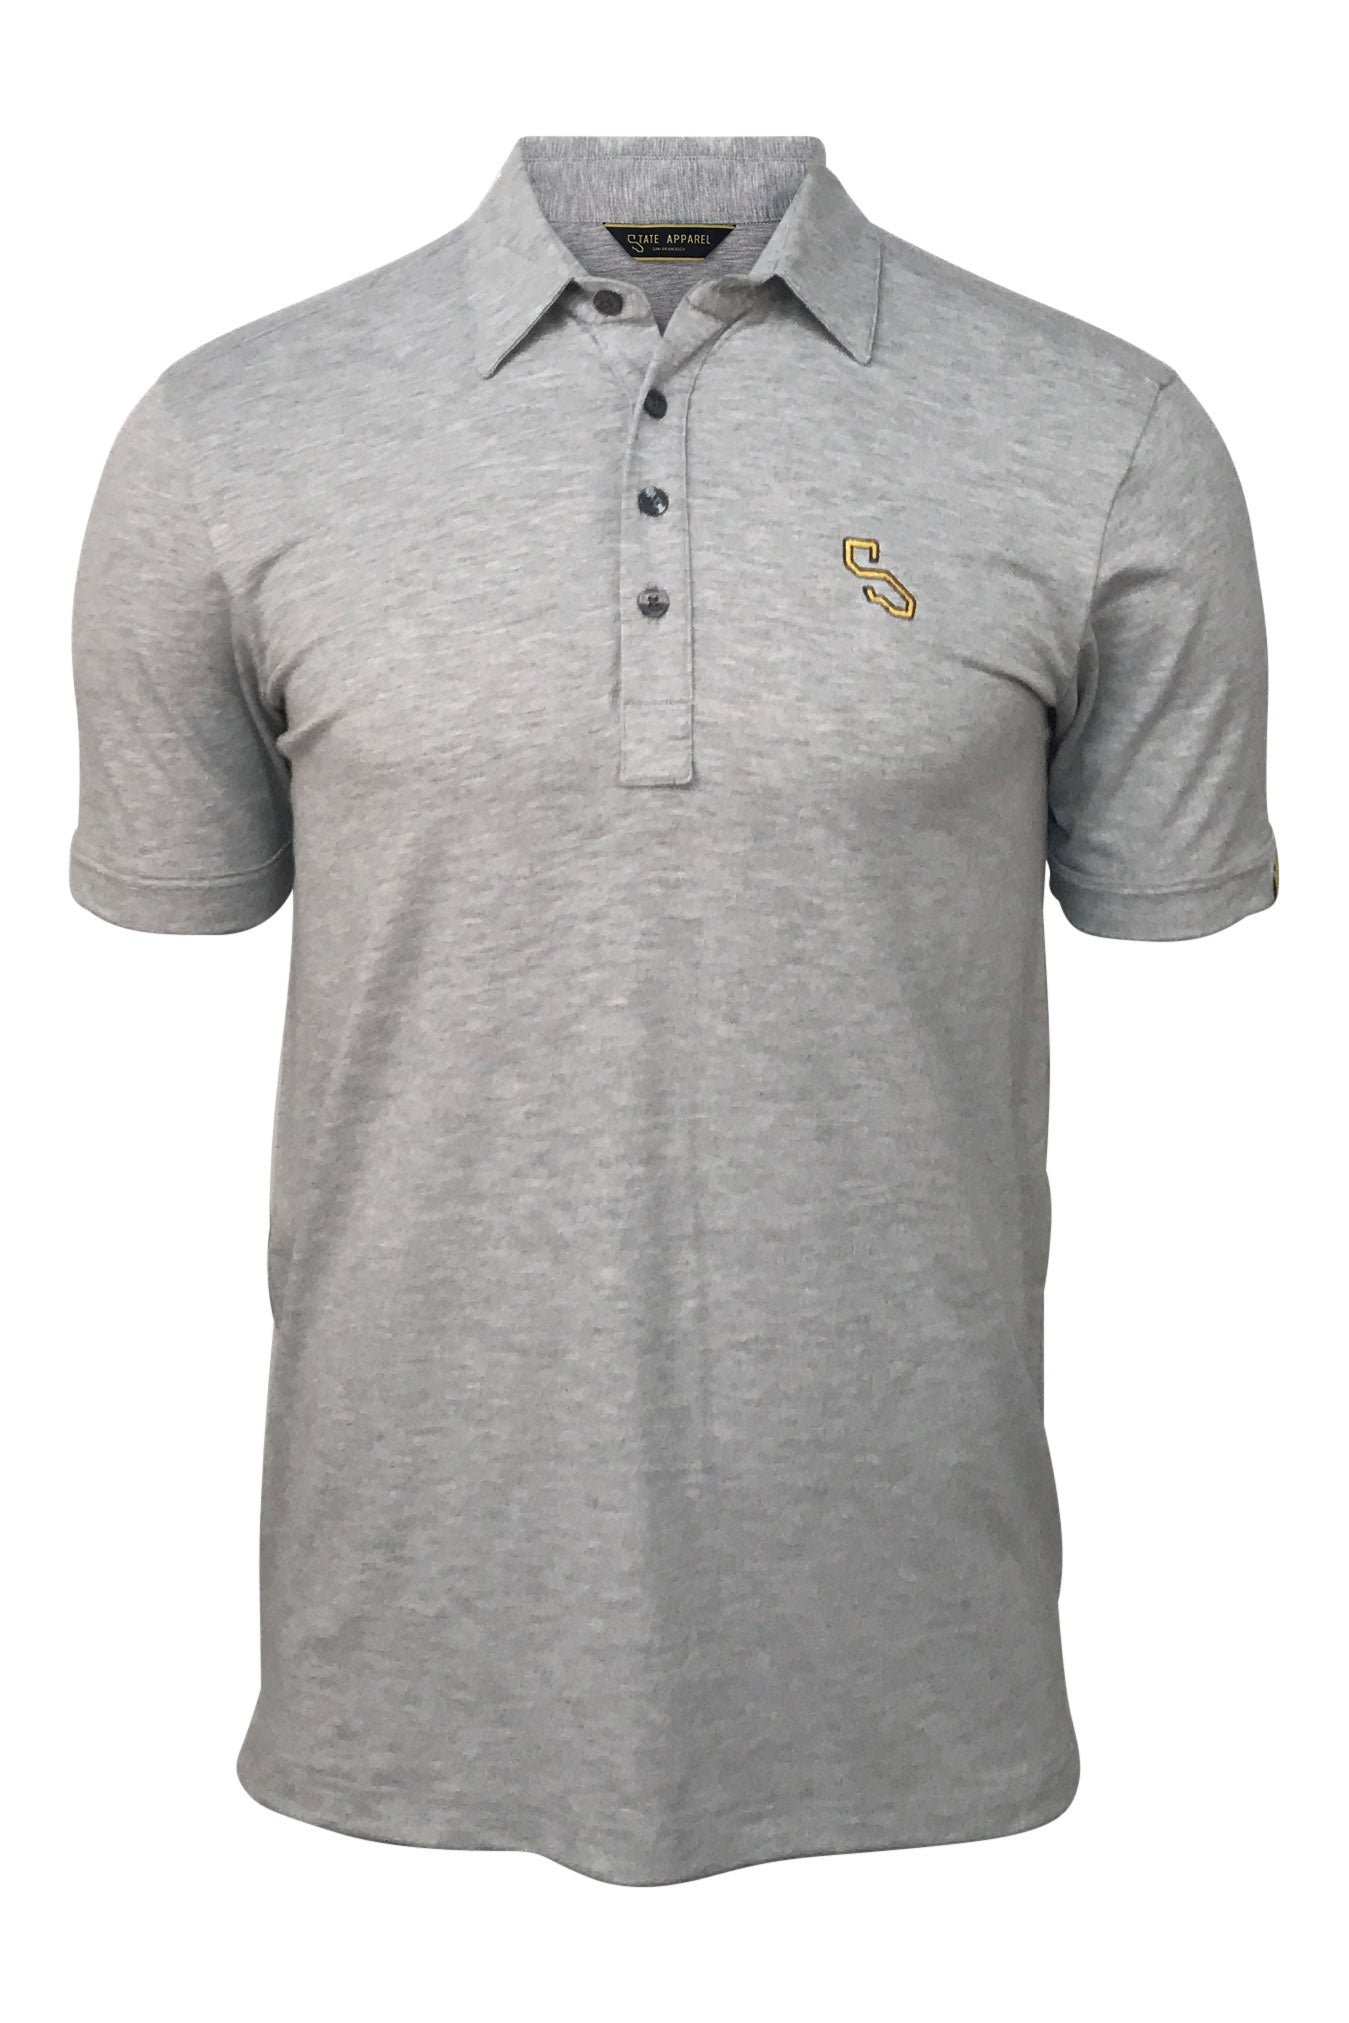 CLUB SHIRT - GRAY